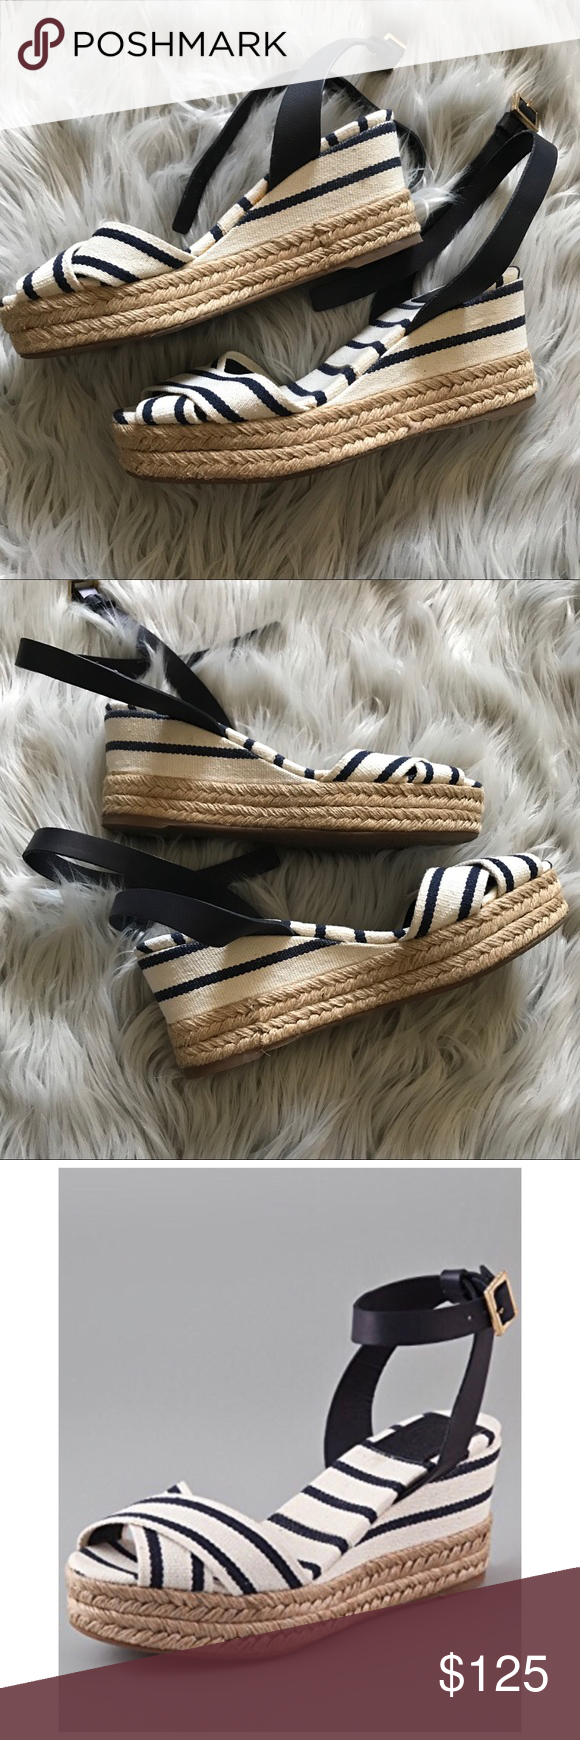 67e777beca6 TORY BURCH Karissa Wedge Espadrille Sandals Authentic Tory Burch Karissa  Wedge Sandals. Size 8.